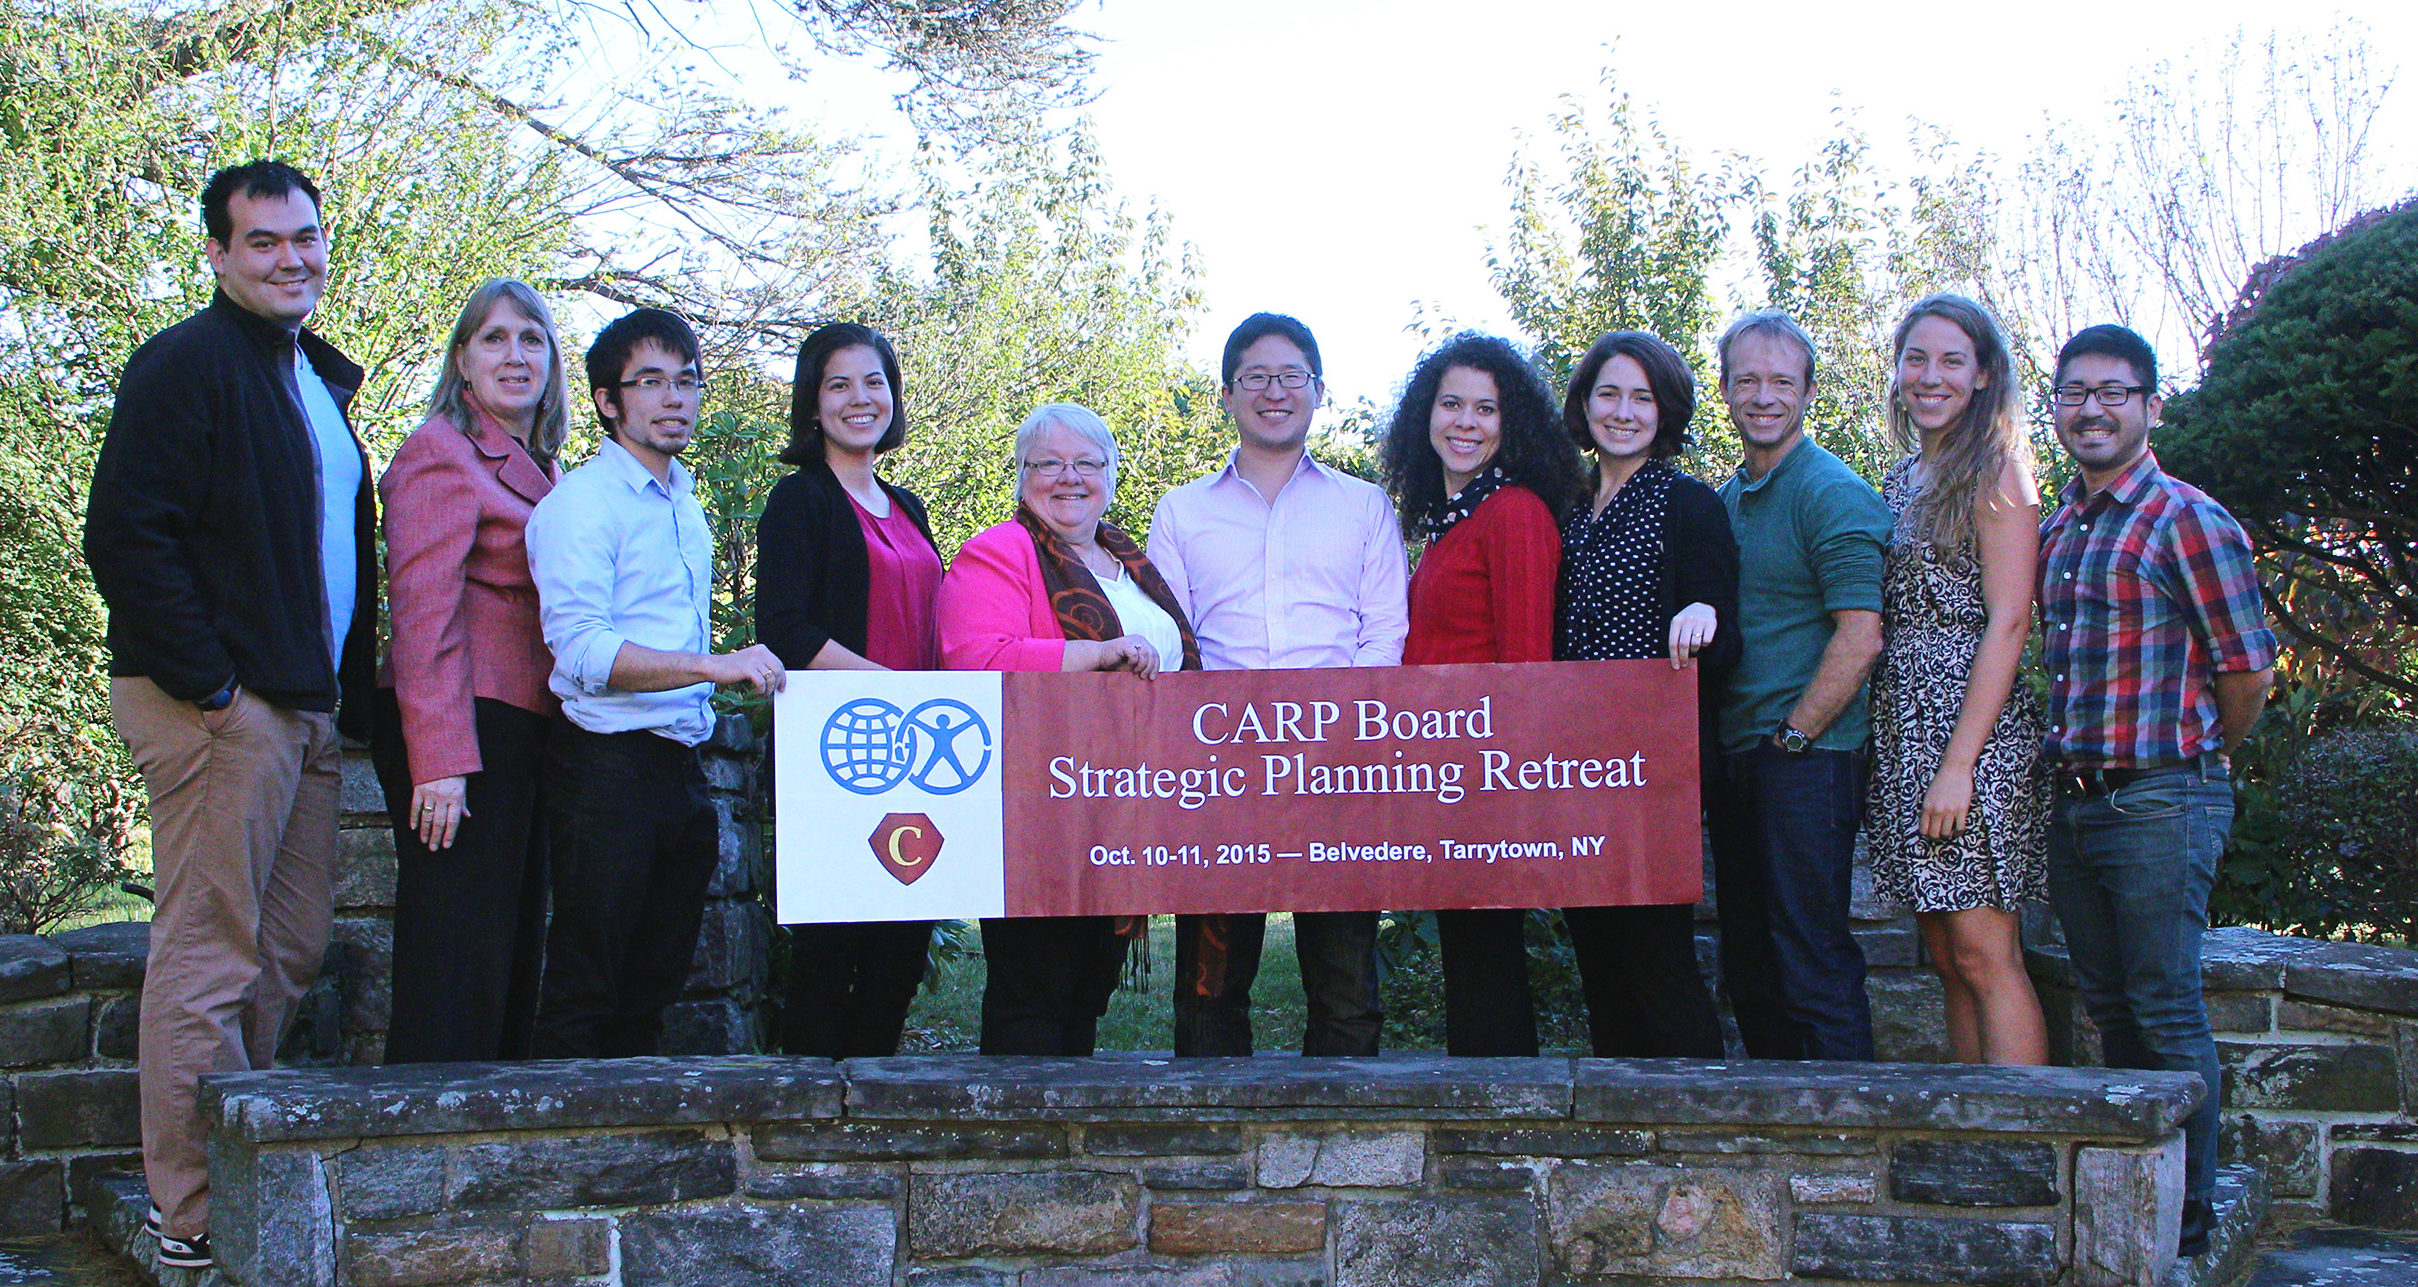 The CARP Board and Staff pose at their October 2015 Strategic Planning Retreat.